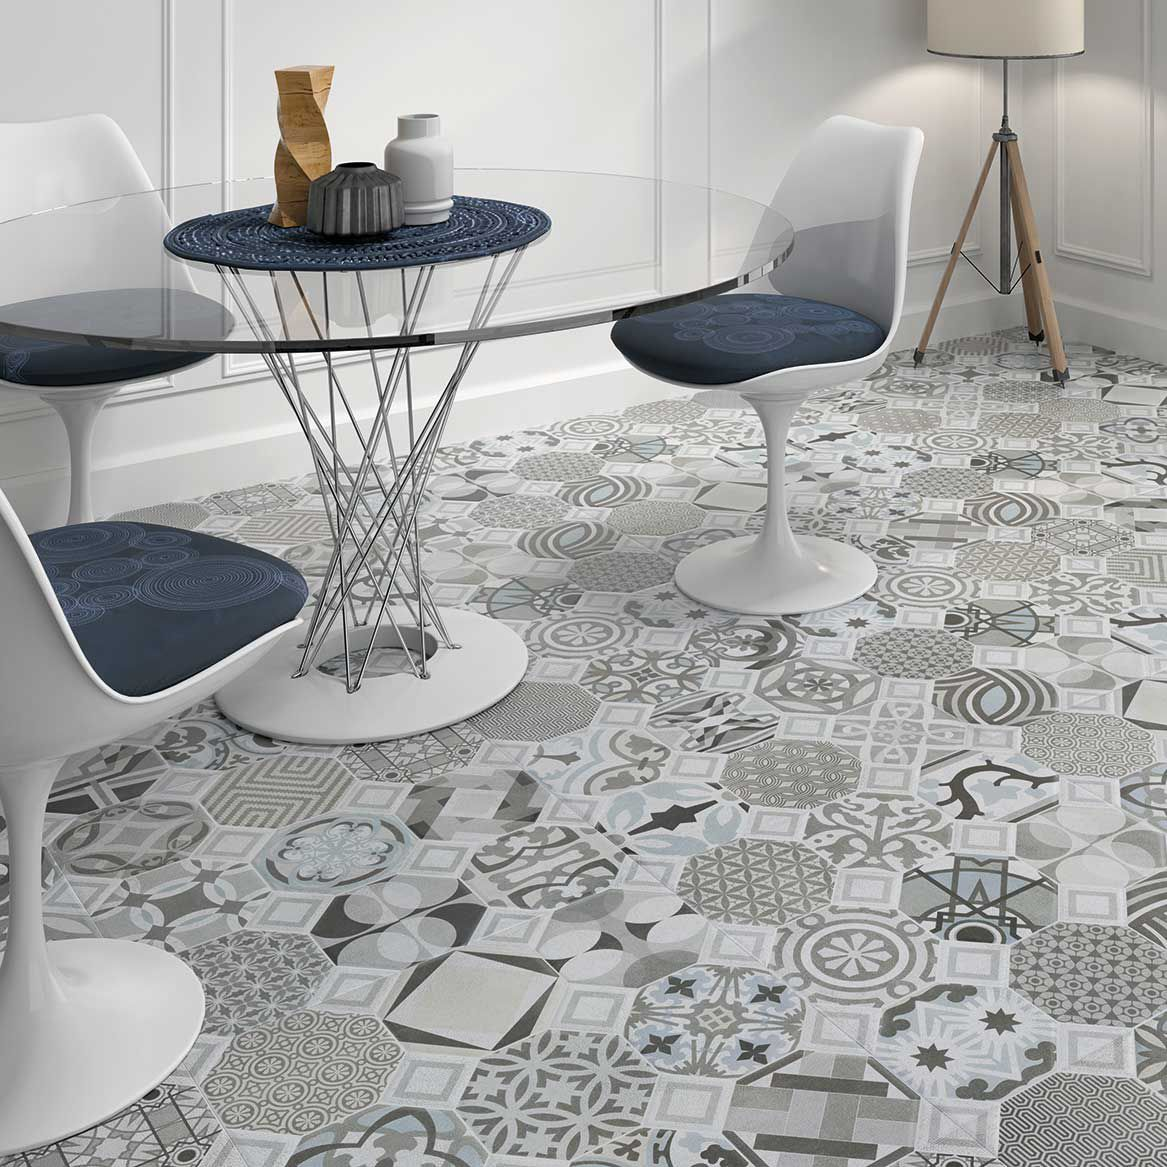 Geotiles Flow 1 (Blue/Grey Patterned) 60x60cm Floor Tile | Blue grey ...